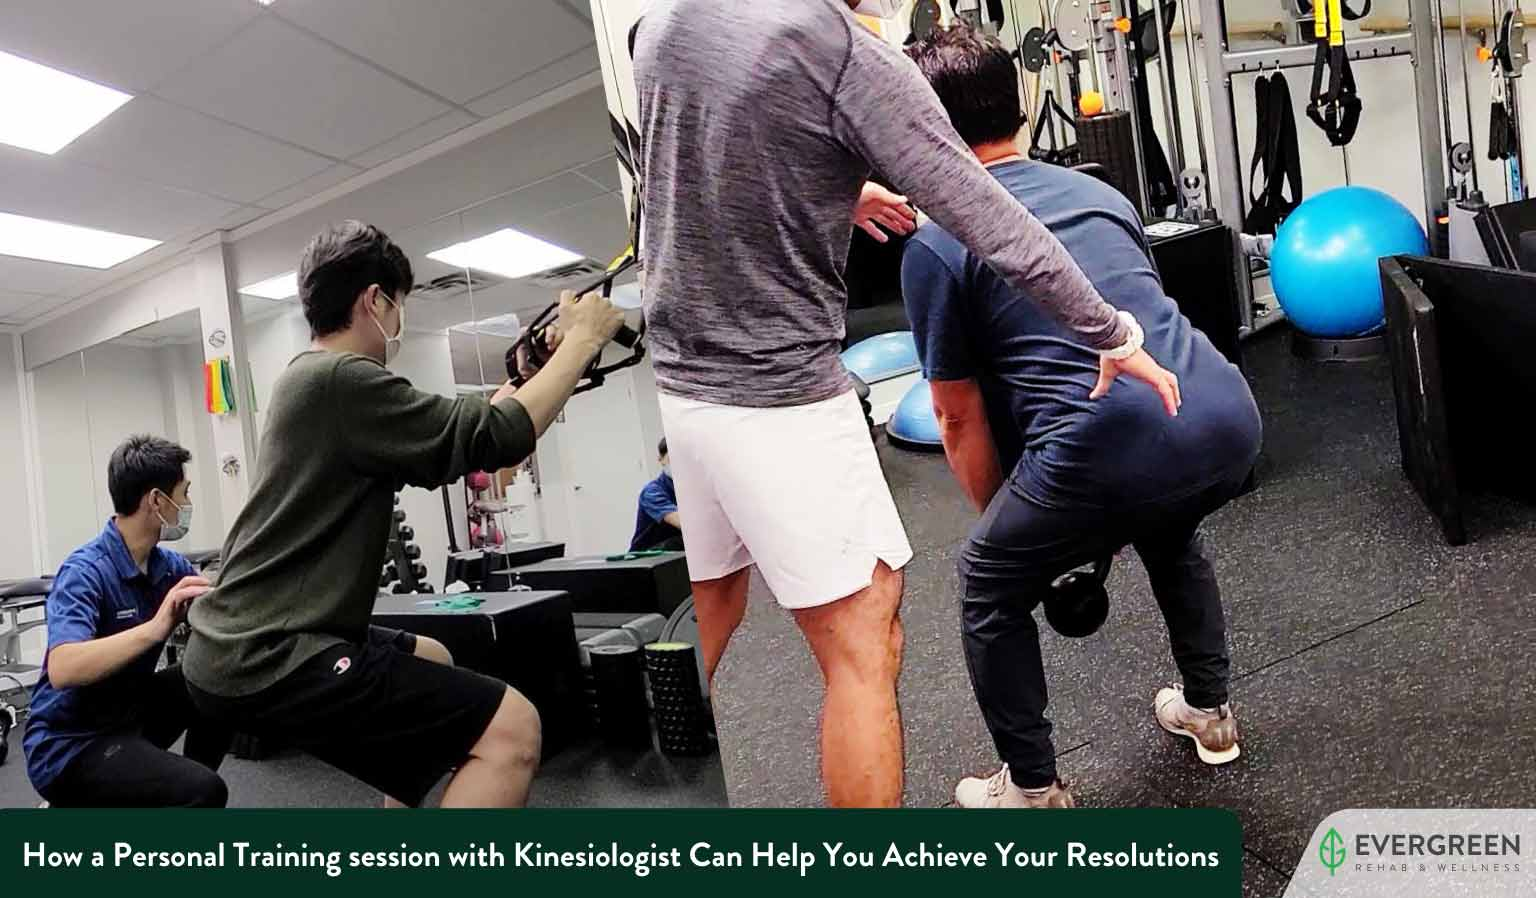 How a Personal Training session with Kinesiologist Can Help You Achieve Your Resolutions This Year